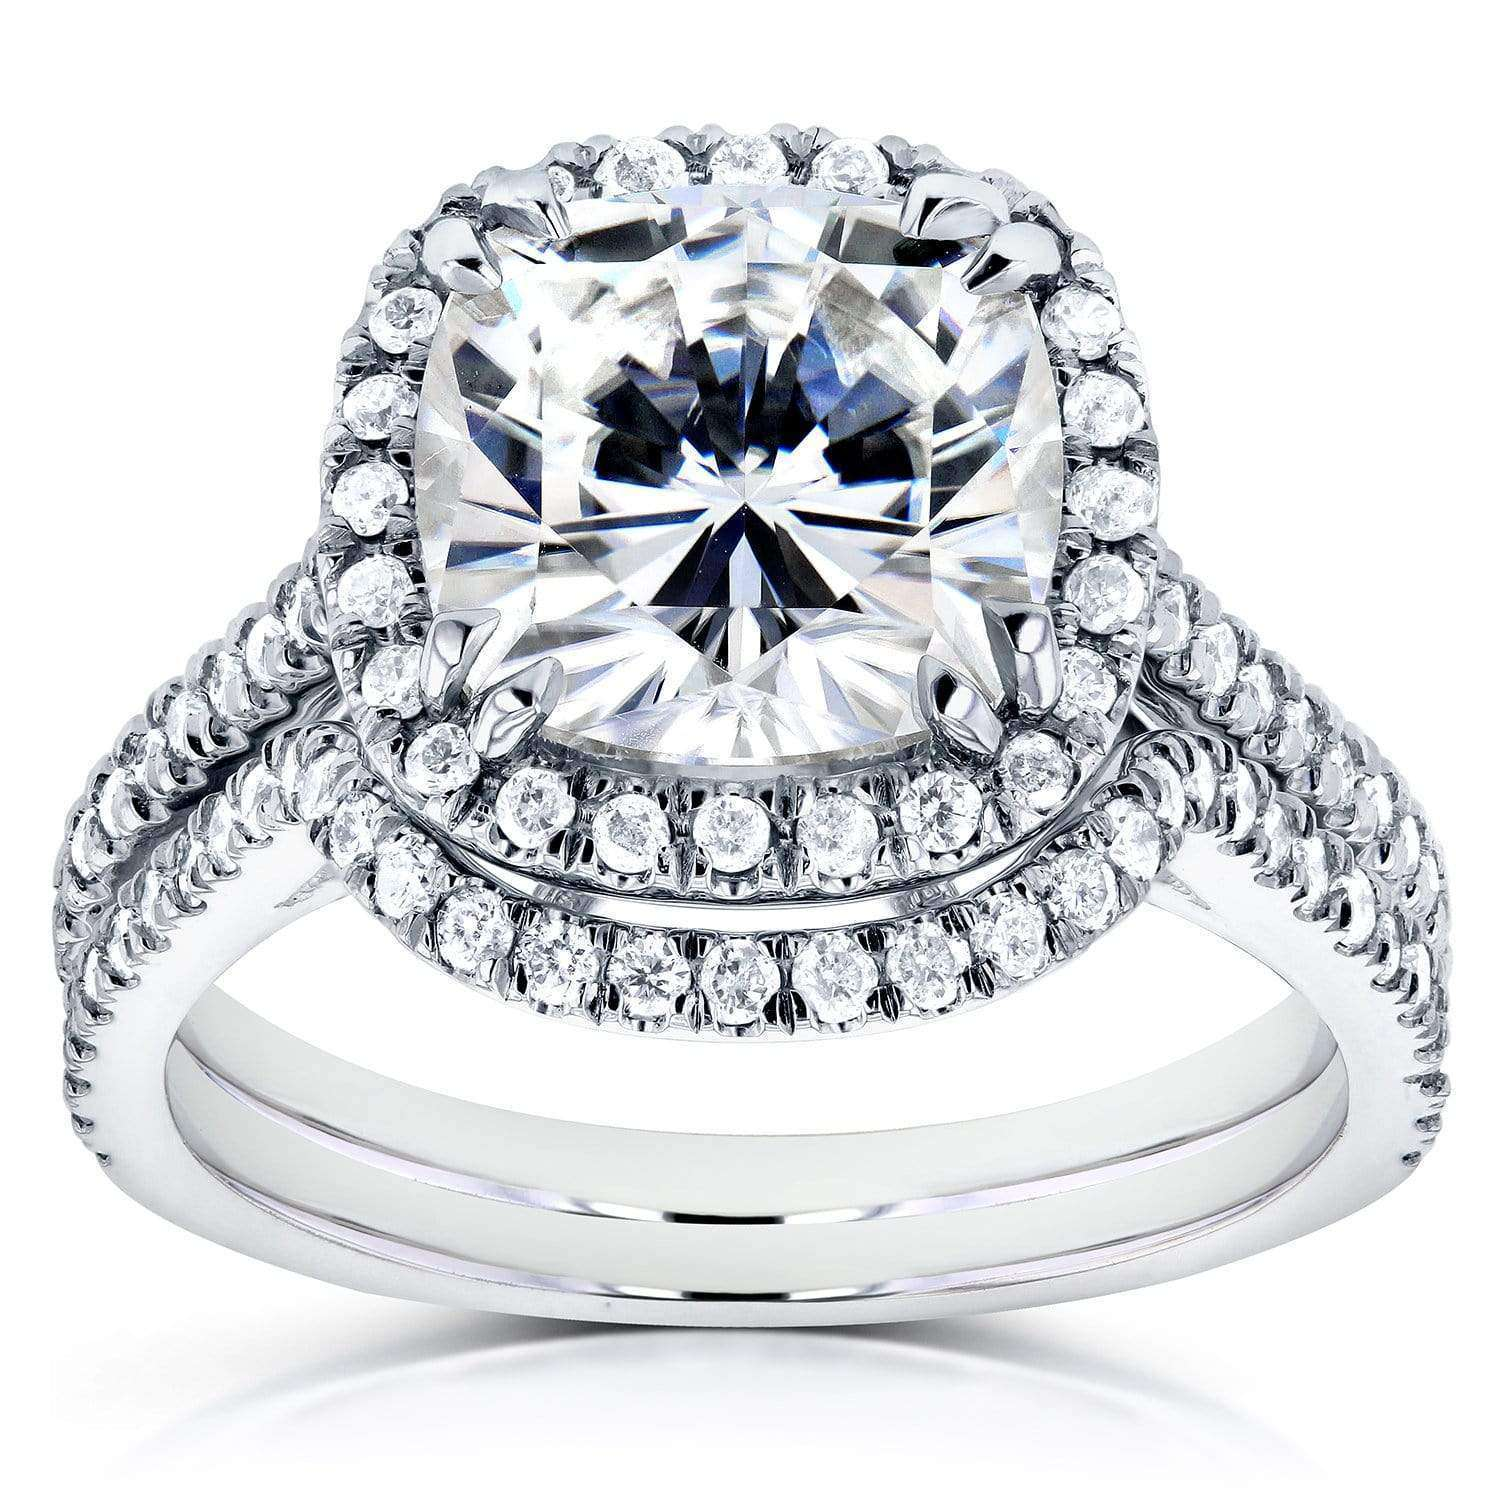 Best Cushion Moissanite Bridal Set with Halo Diamond 3 1/4 CTW 14k White Gold - 6